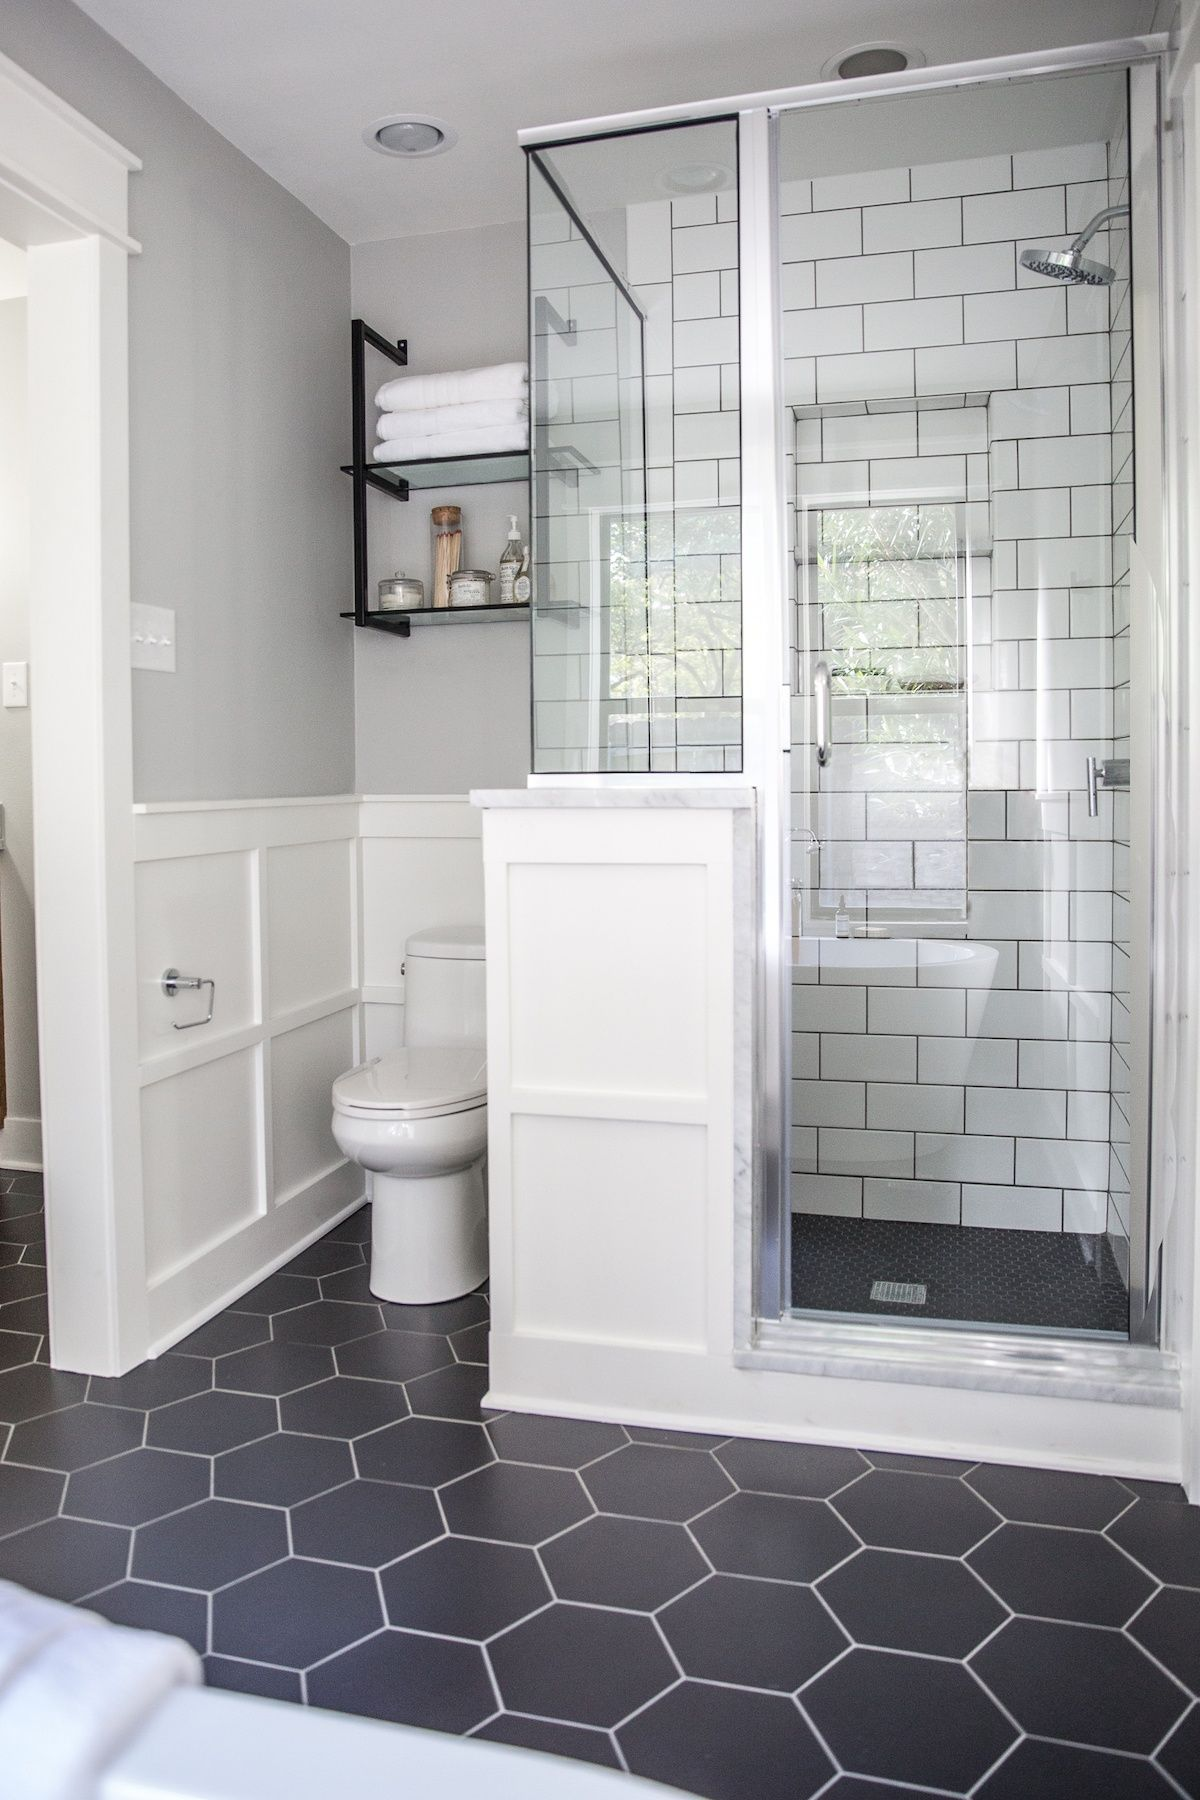 A Master Bathroom Renovation | Pinterest | White subway tiles ...